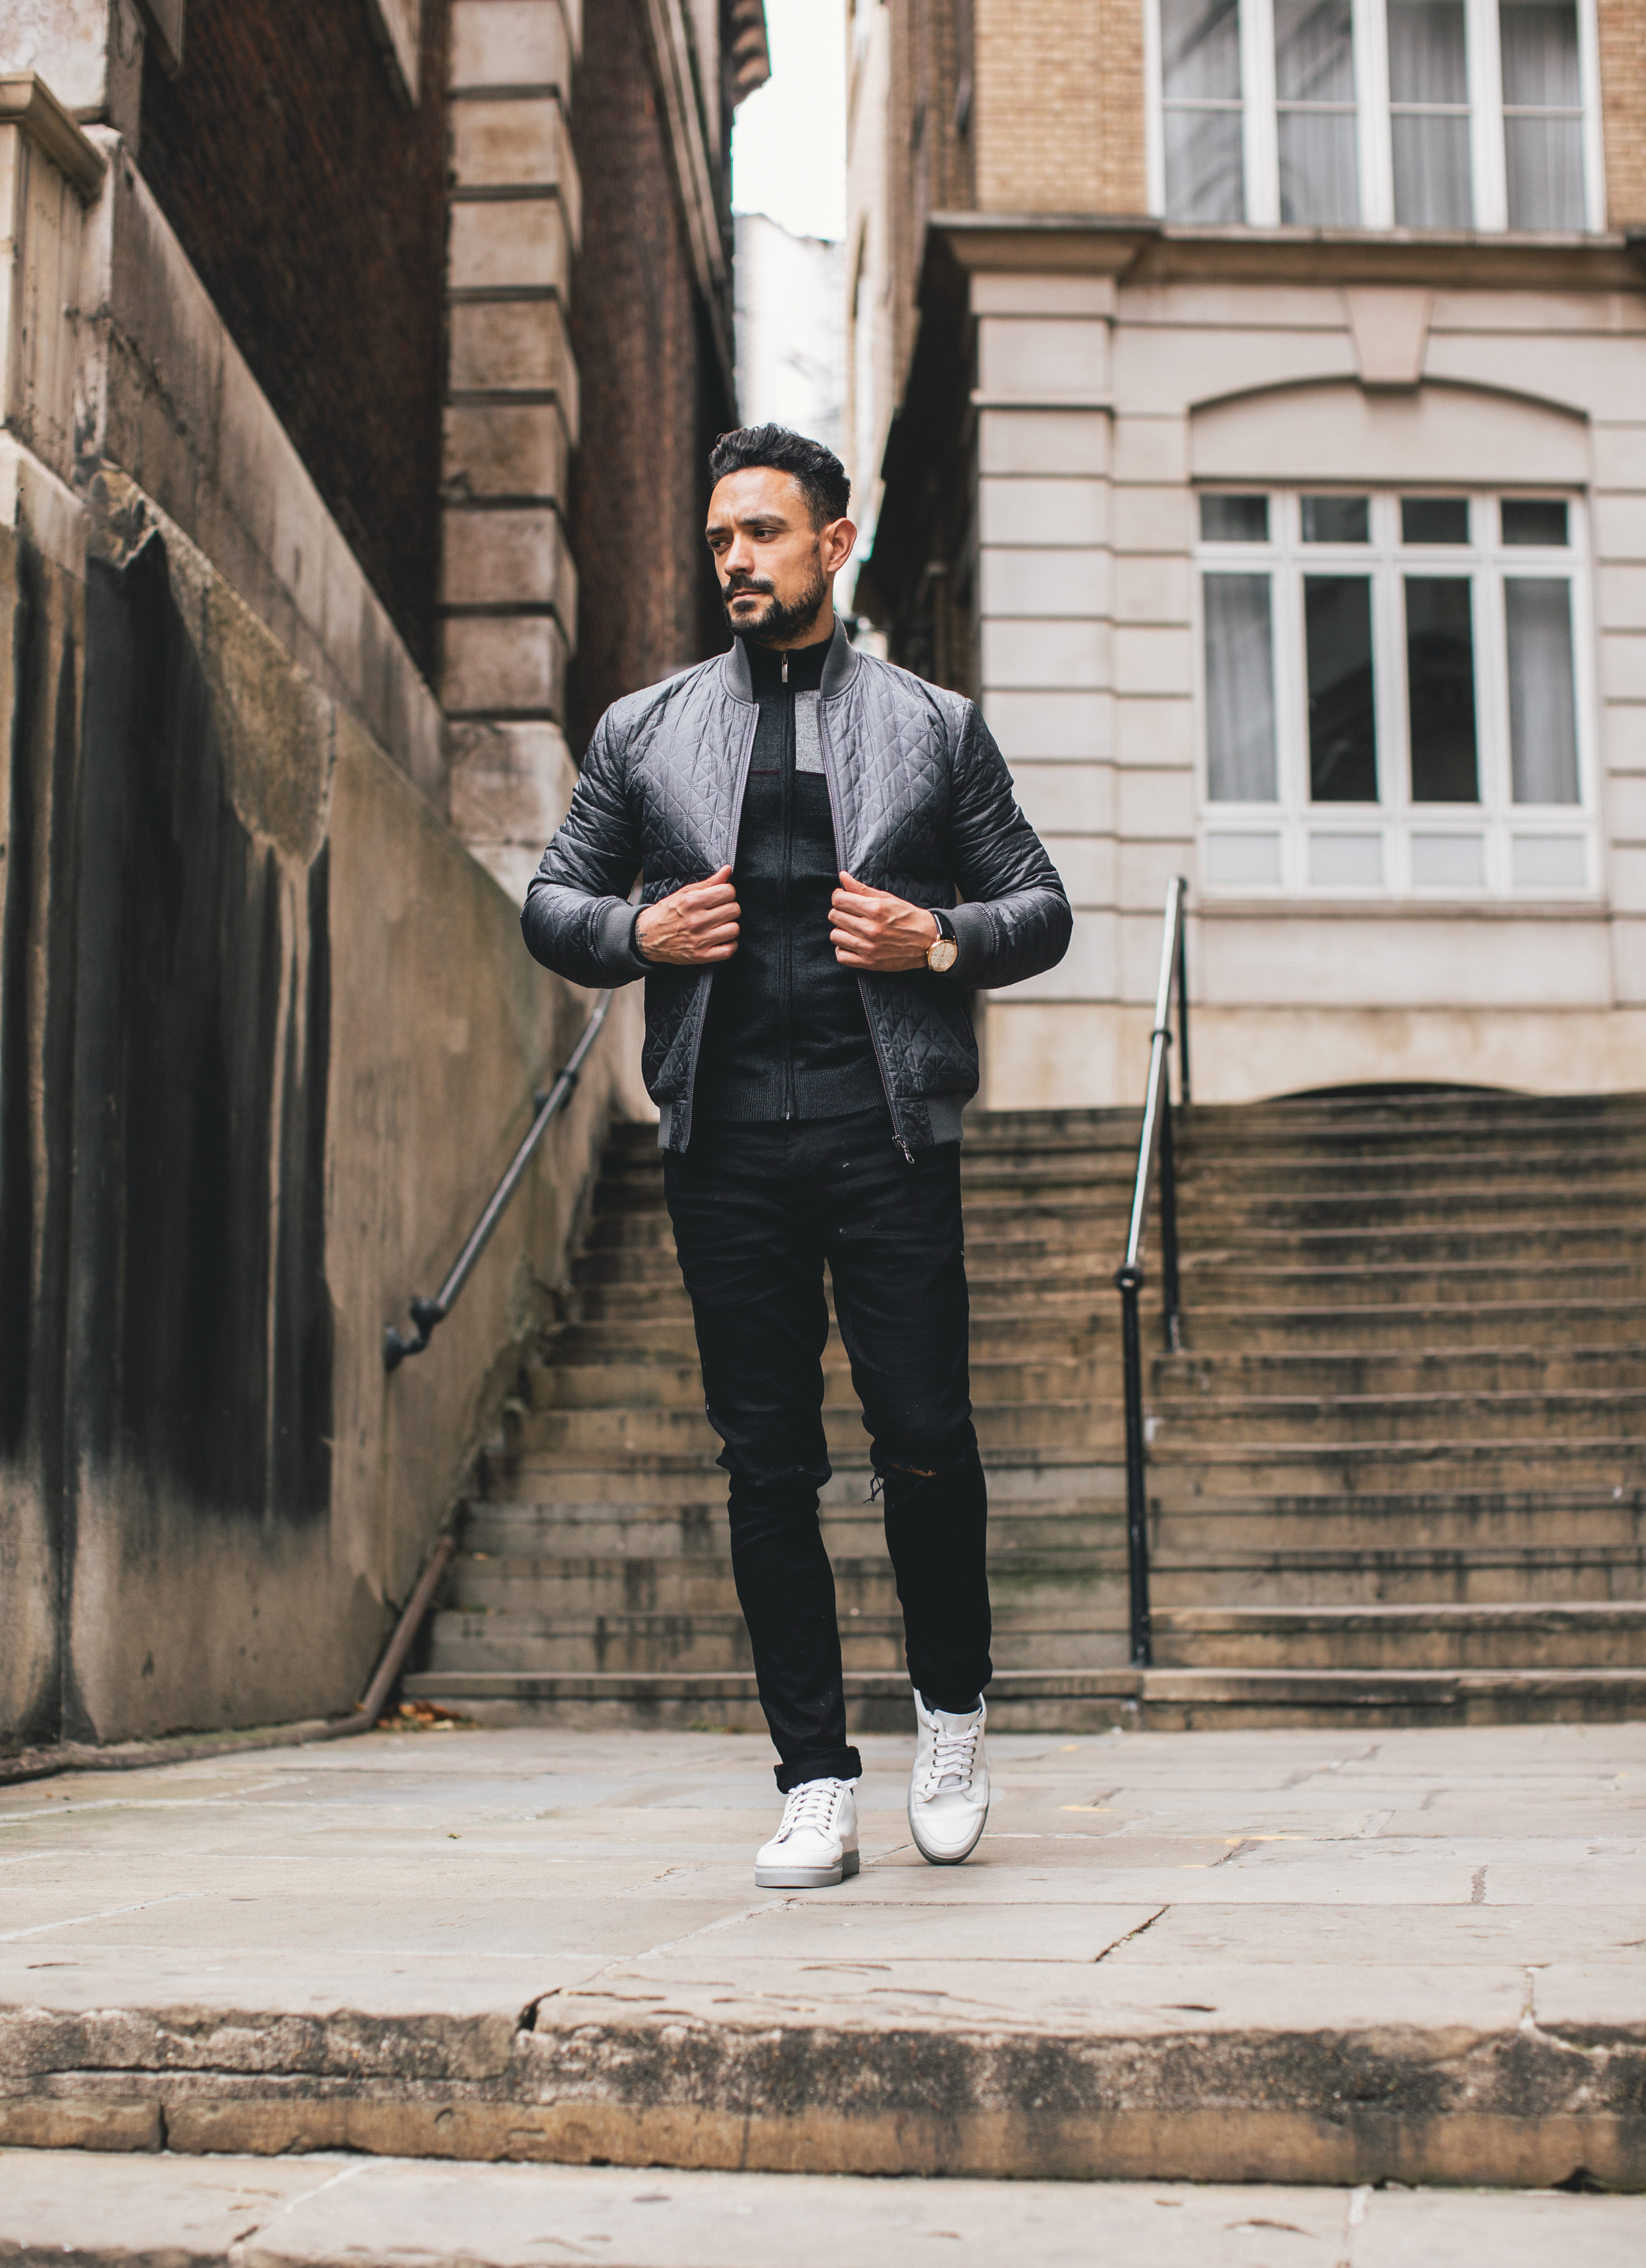 f23814216c Moving on to my casual look from the same brand and collection. With the  need for greater comfort clothing, Remus Uomo have focused on the  sports-luxe trend ...